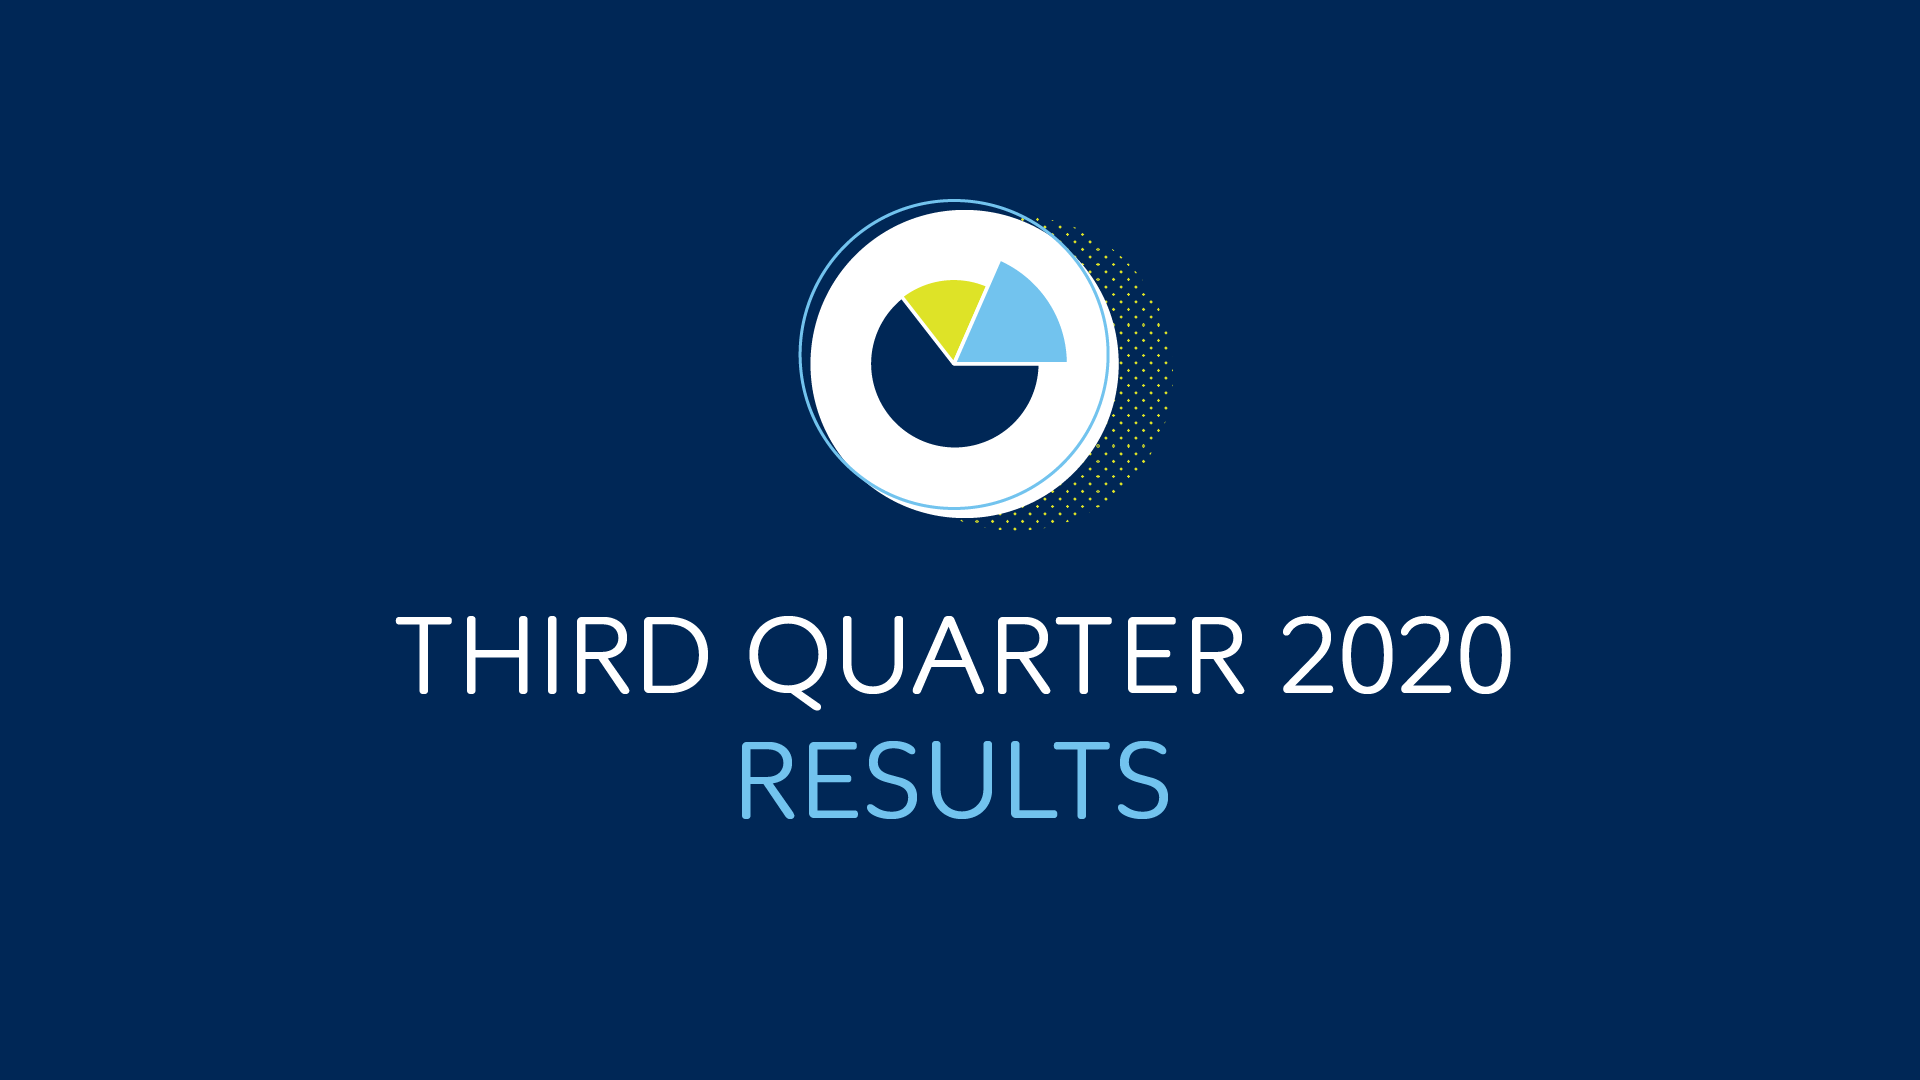 Wintershall Dea presents Q3 Results